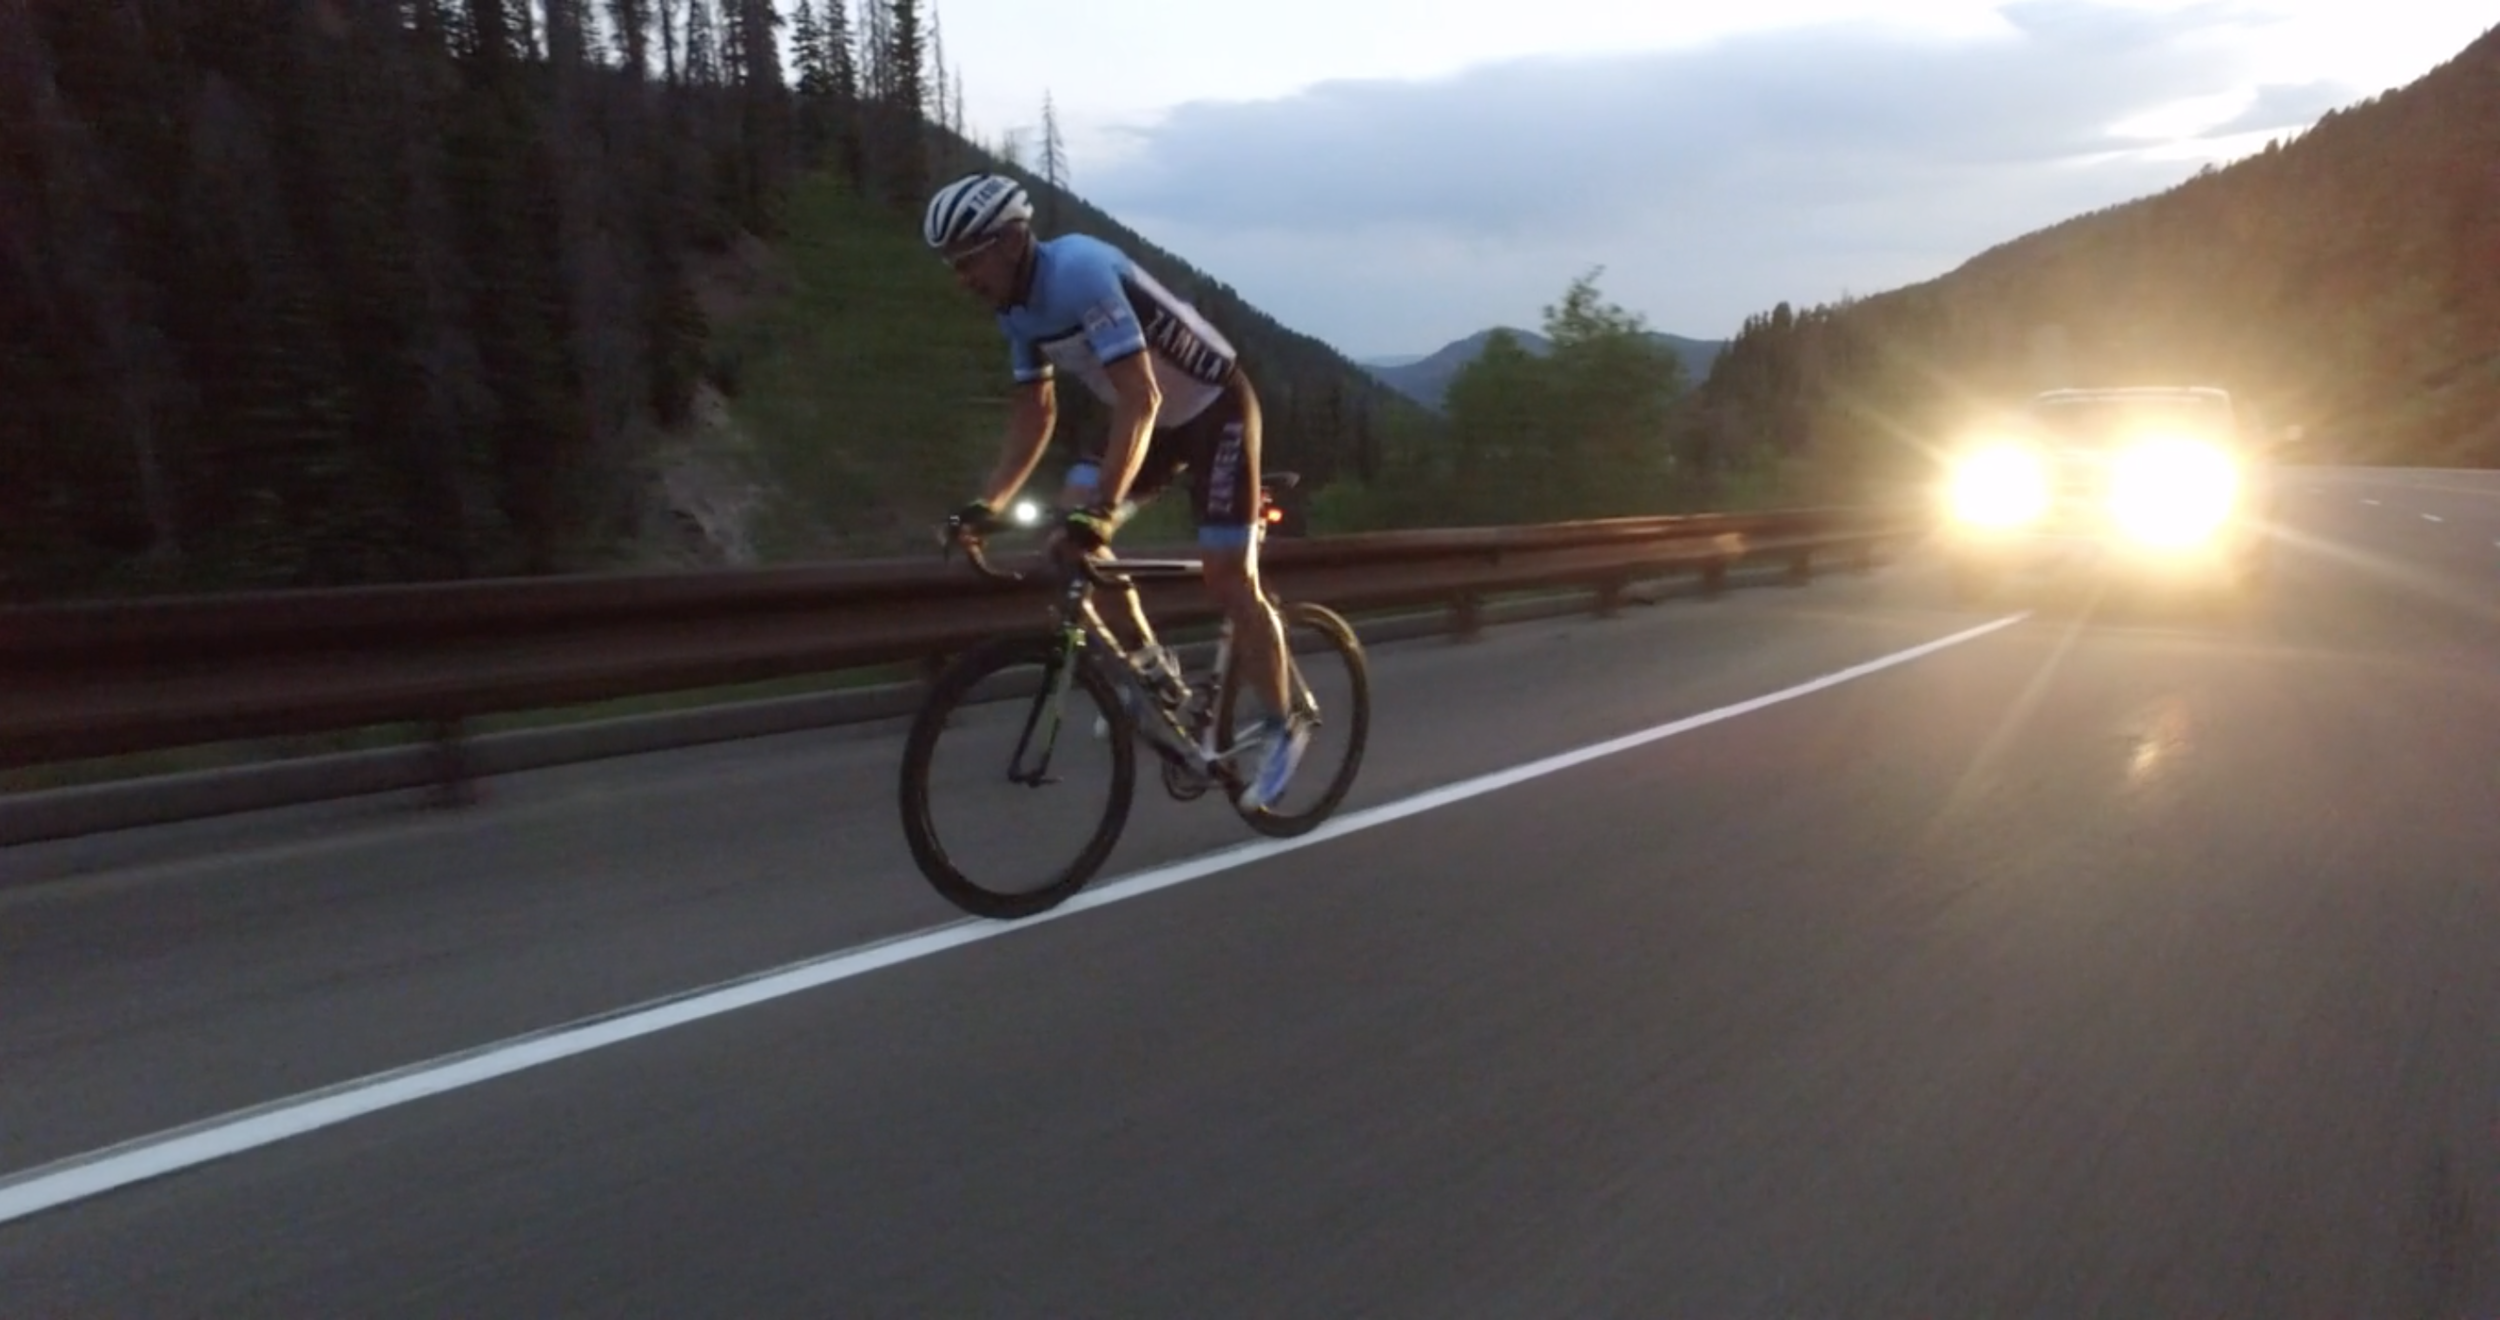 Matt Puomo approaching the highest point in RAAM - Wolf Creek Pass, CO 10,800'